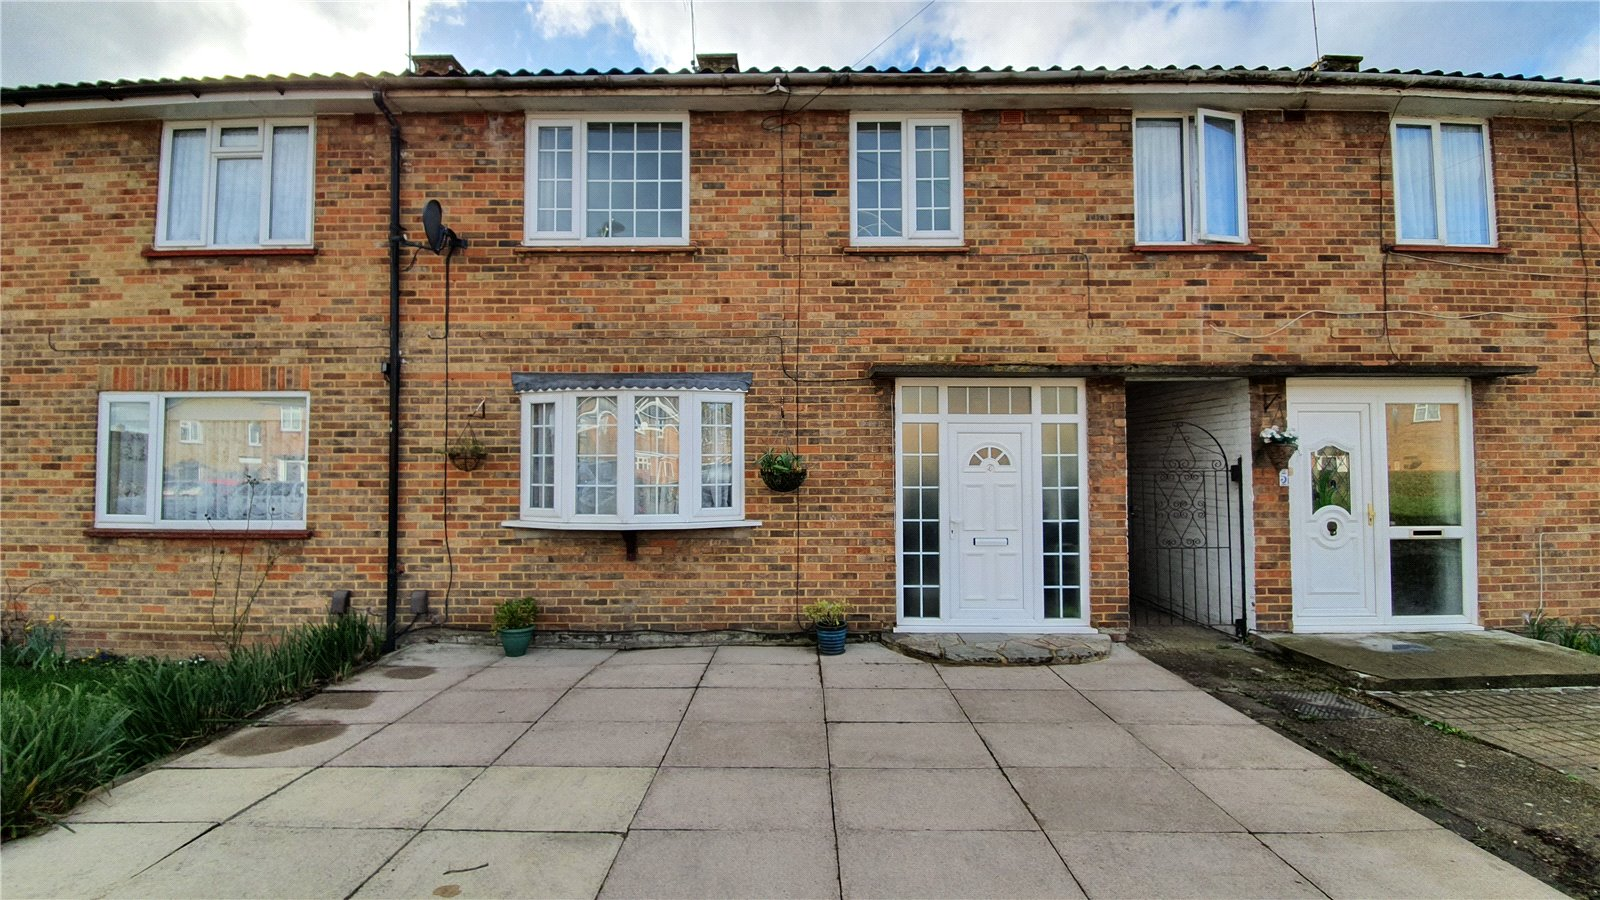 3 bed house for sale in Edgware, HA8 8XT - Property Image 1